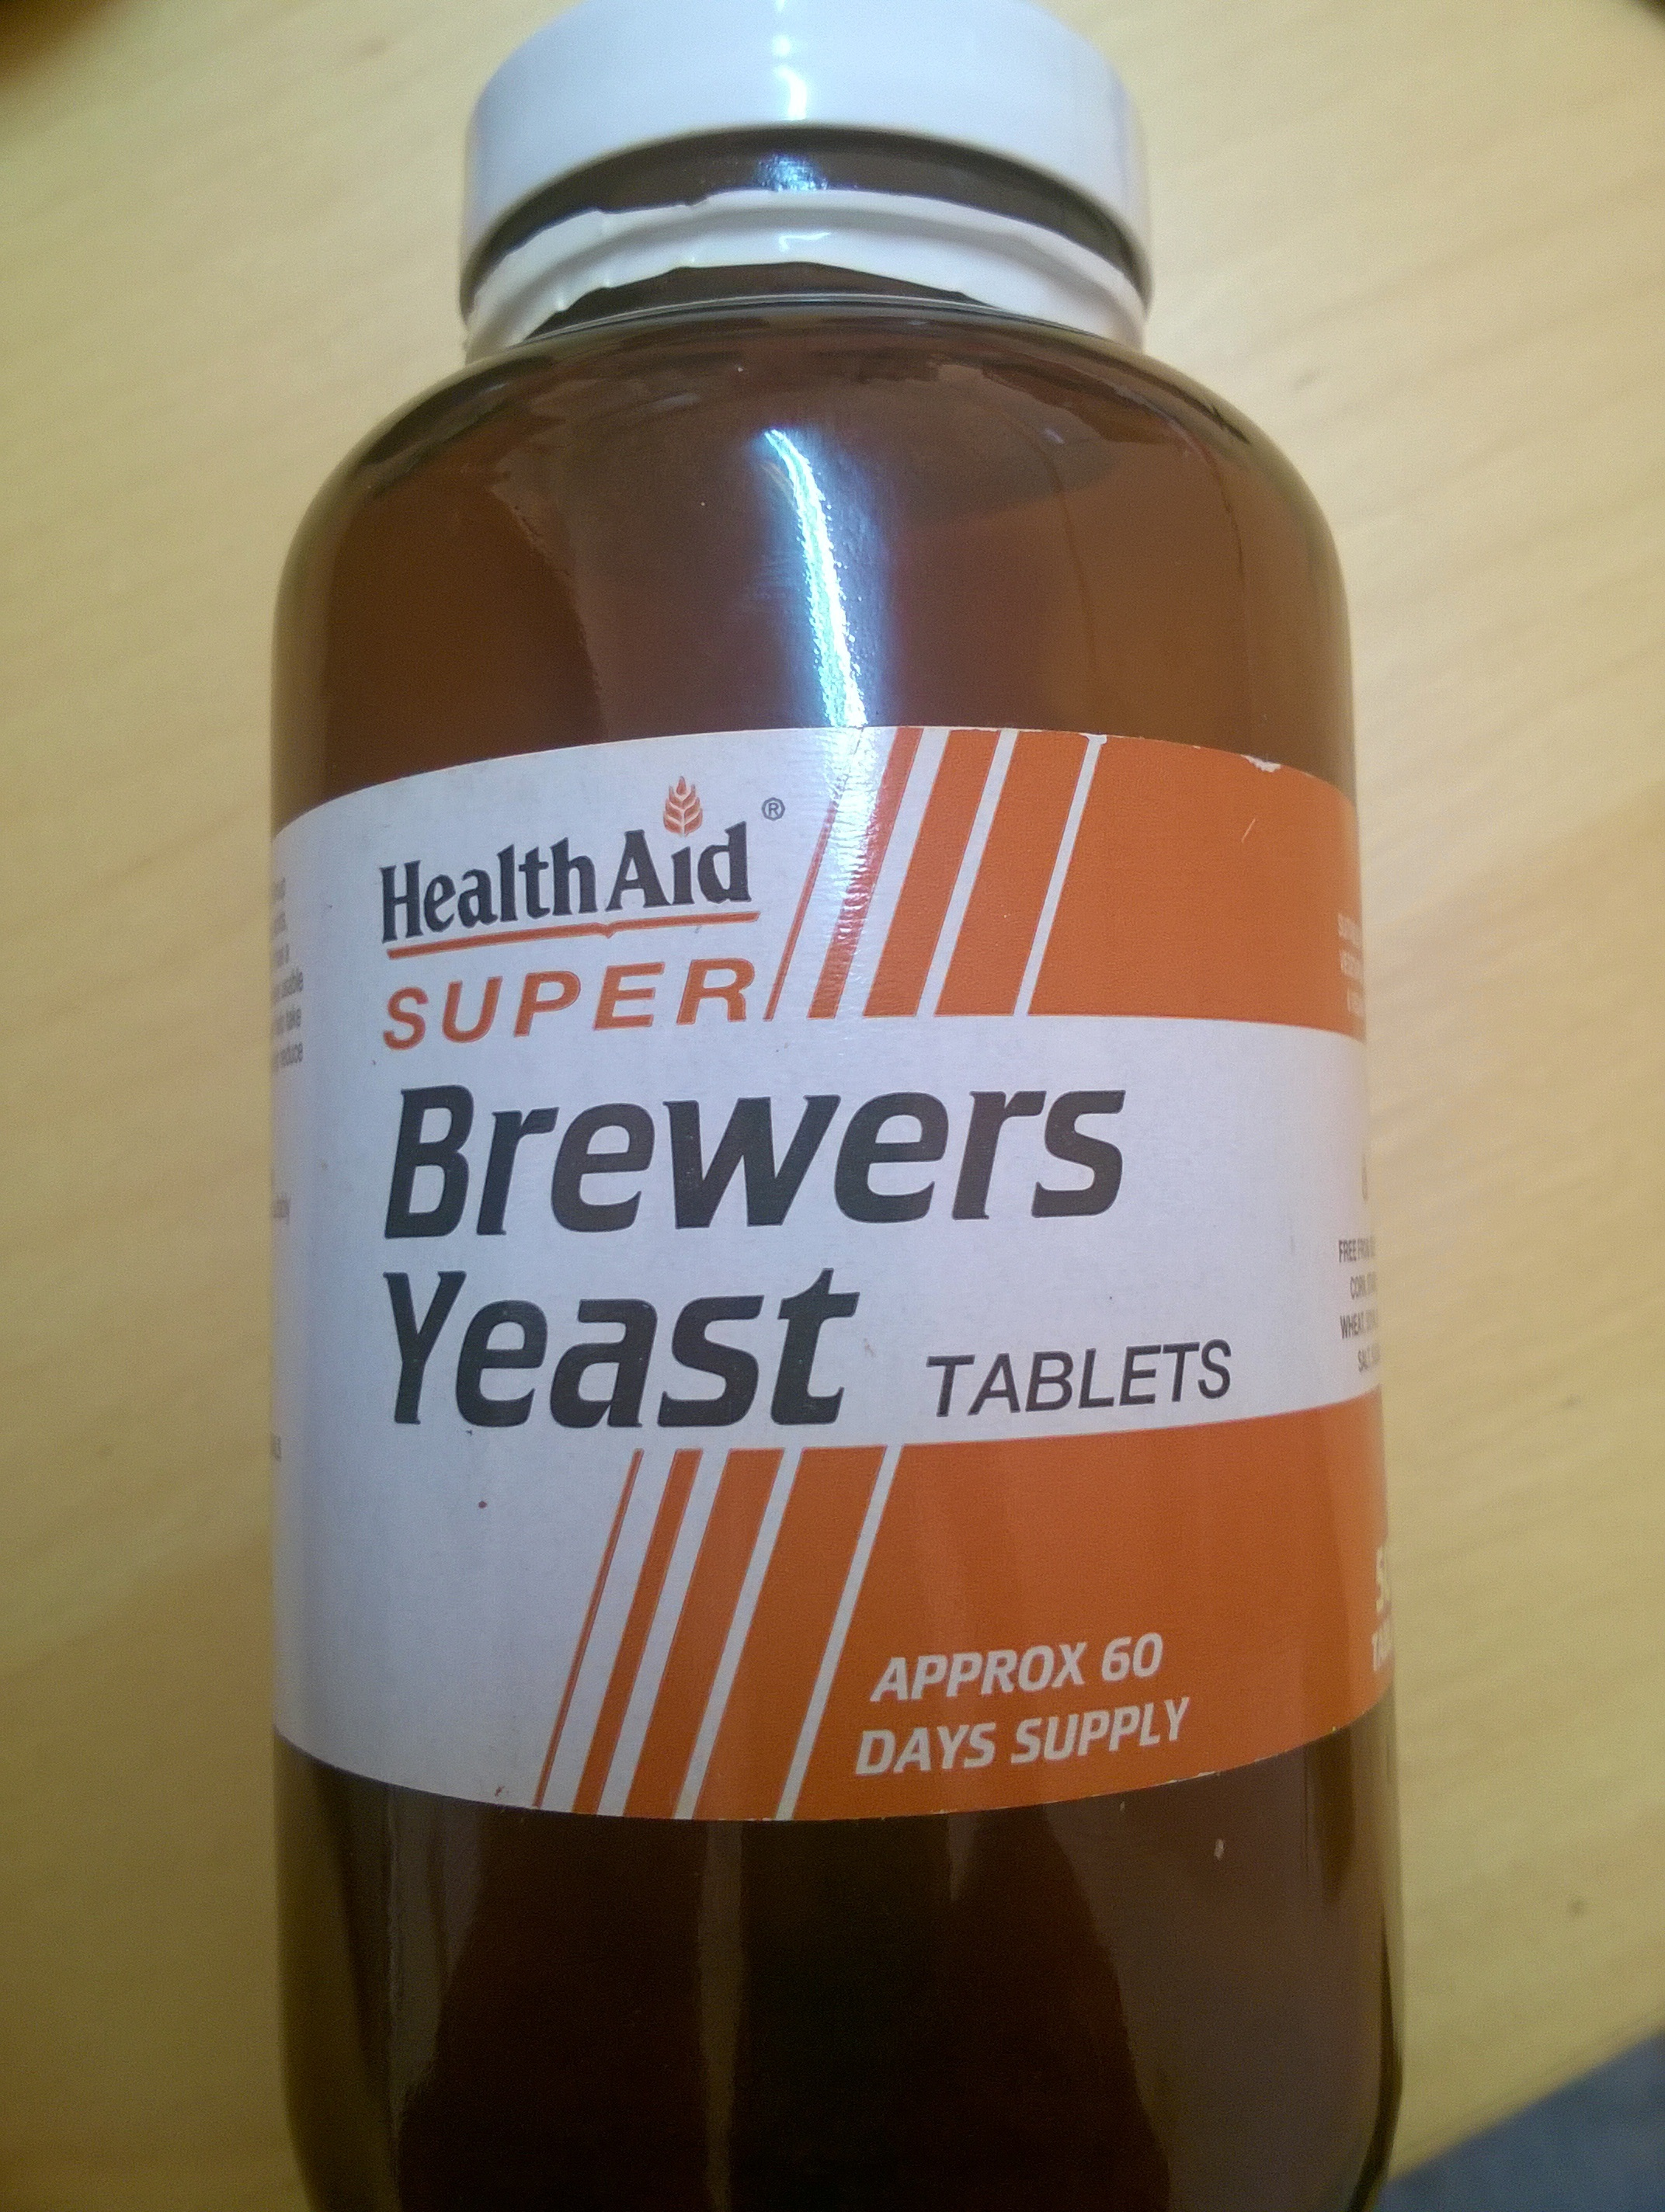 yeast suspension The yeast cell suspension is gently shaken and well stirred to ensure the suspension is properly mixed 5 the end of capillary tube is inserted into the suspension and risen the liquid into the tube.